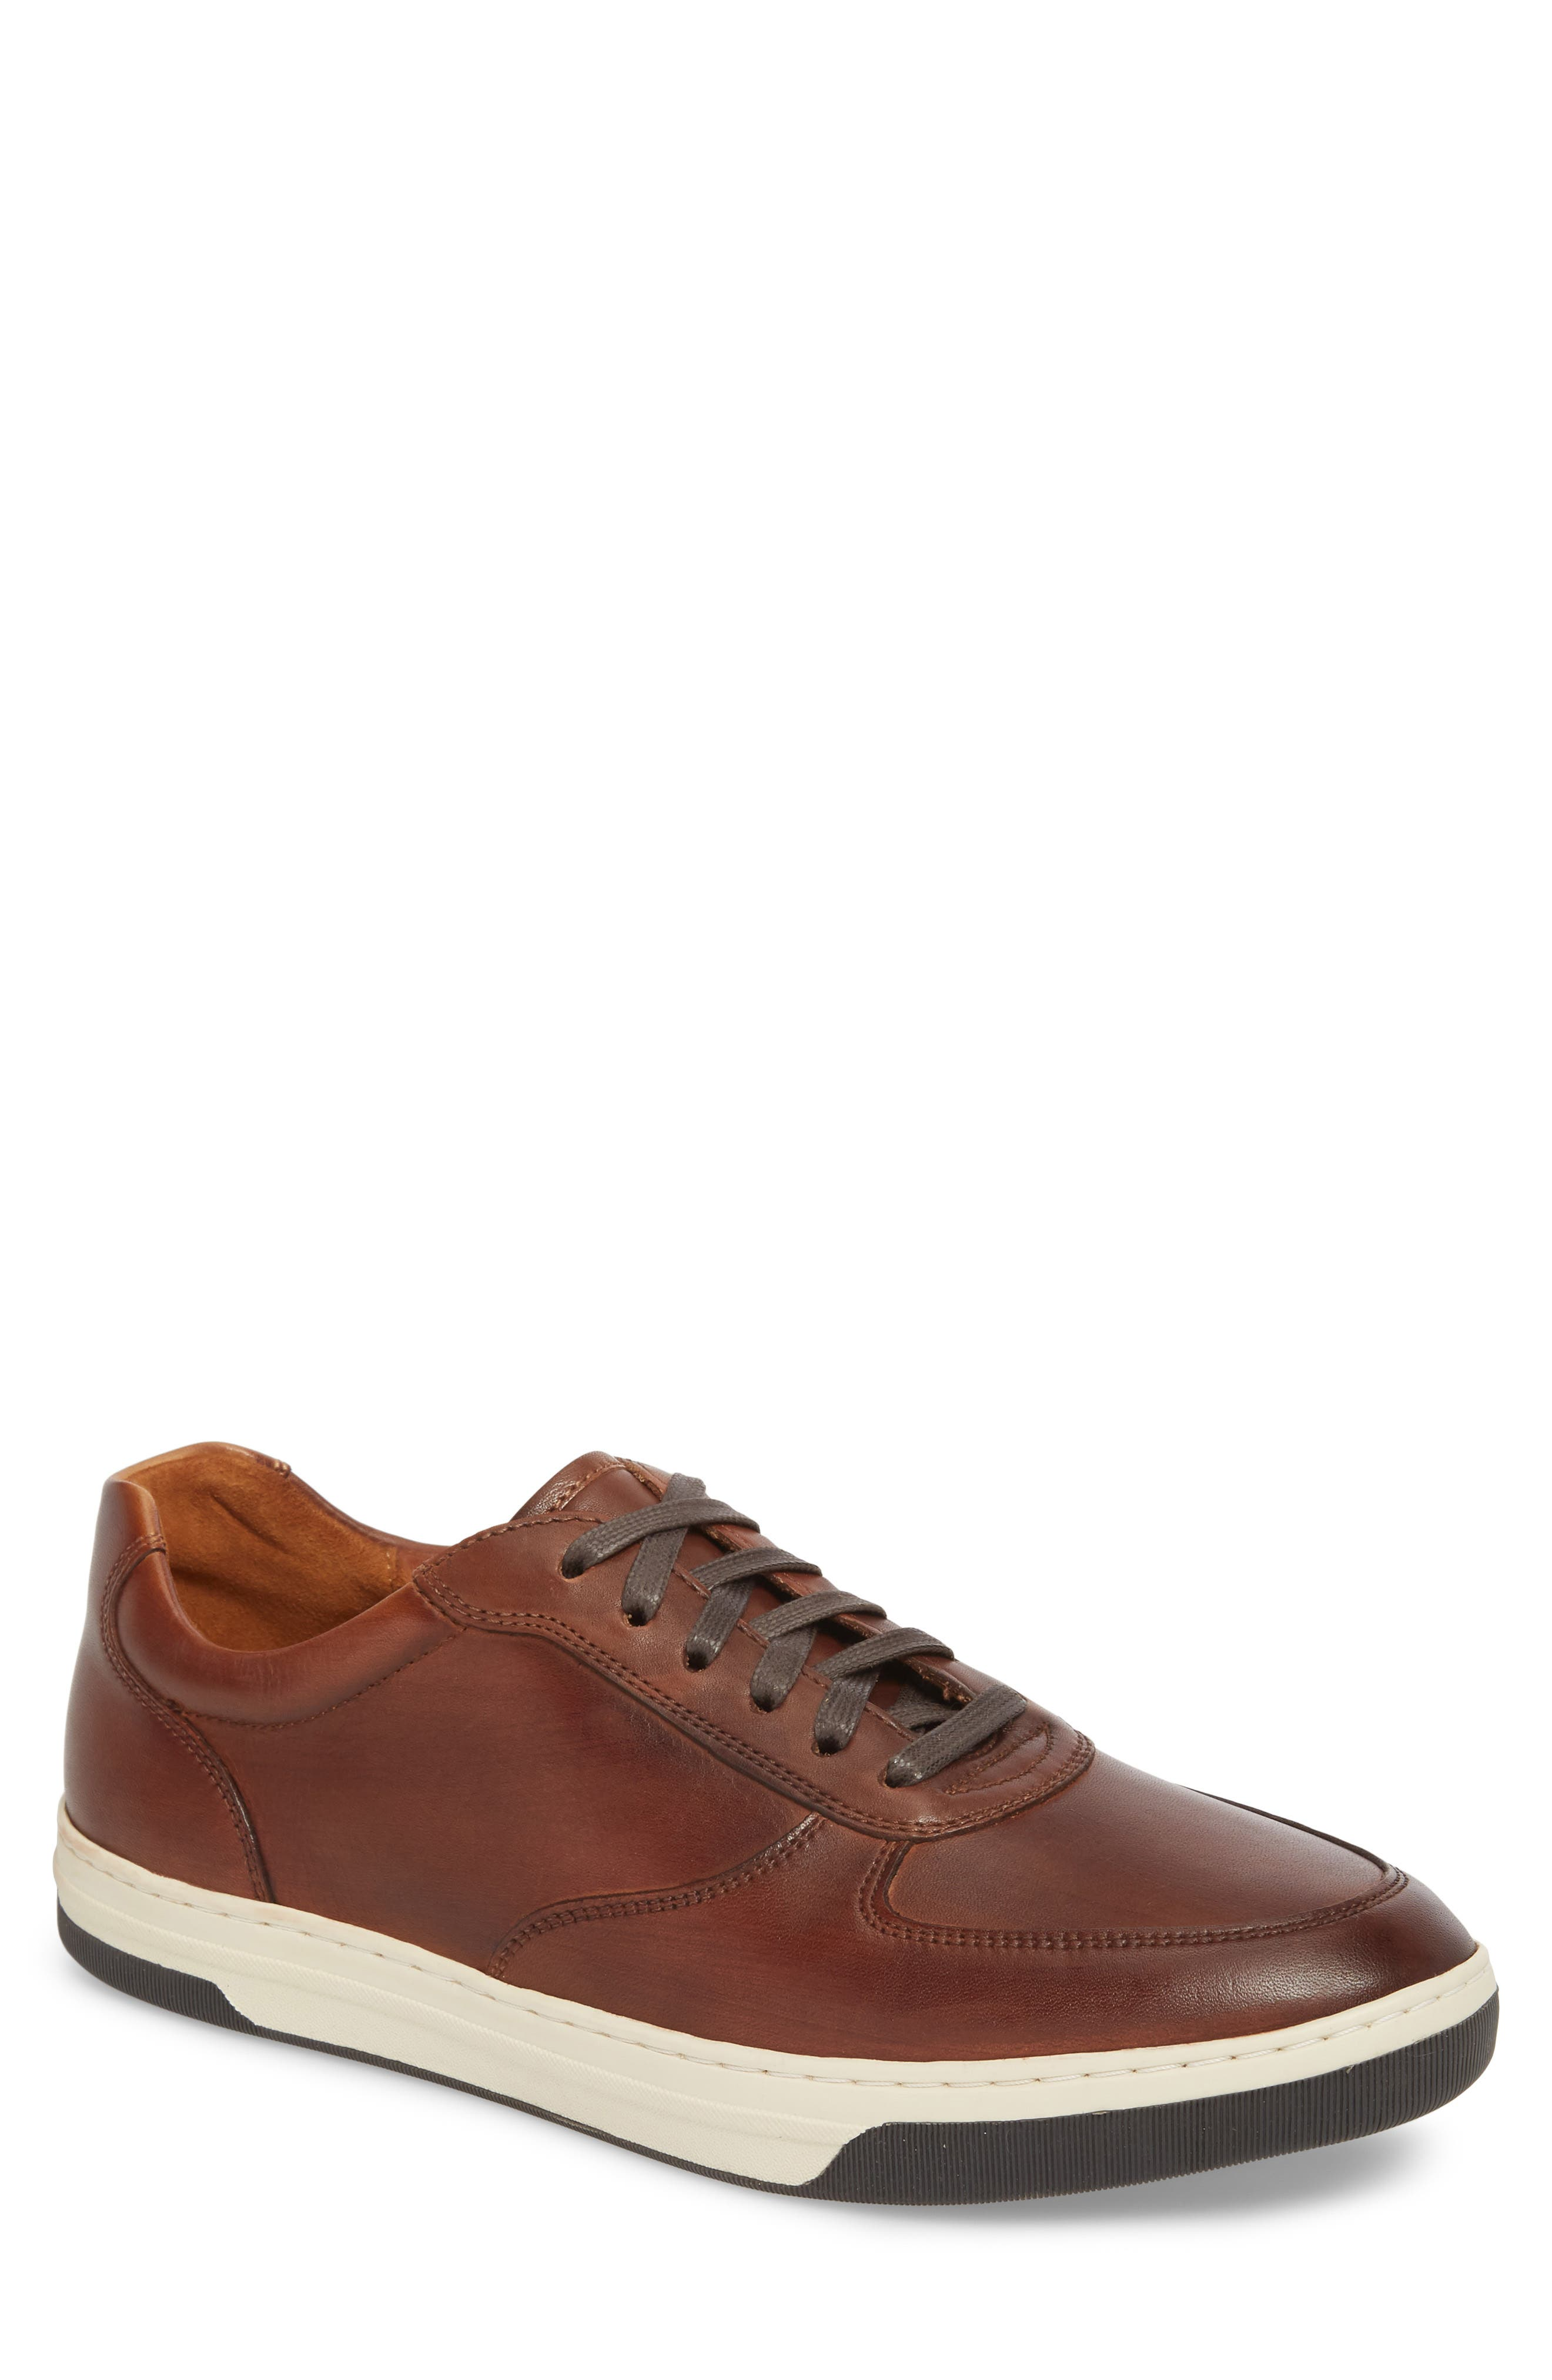 Main Image - Johnston & Murphy Fenton Low Top Sneaker (Men)